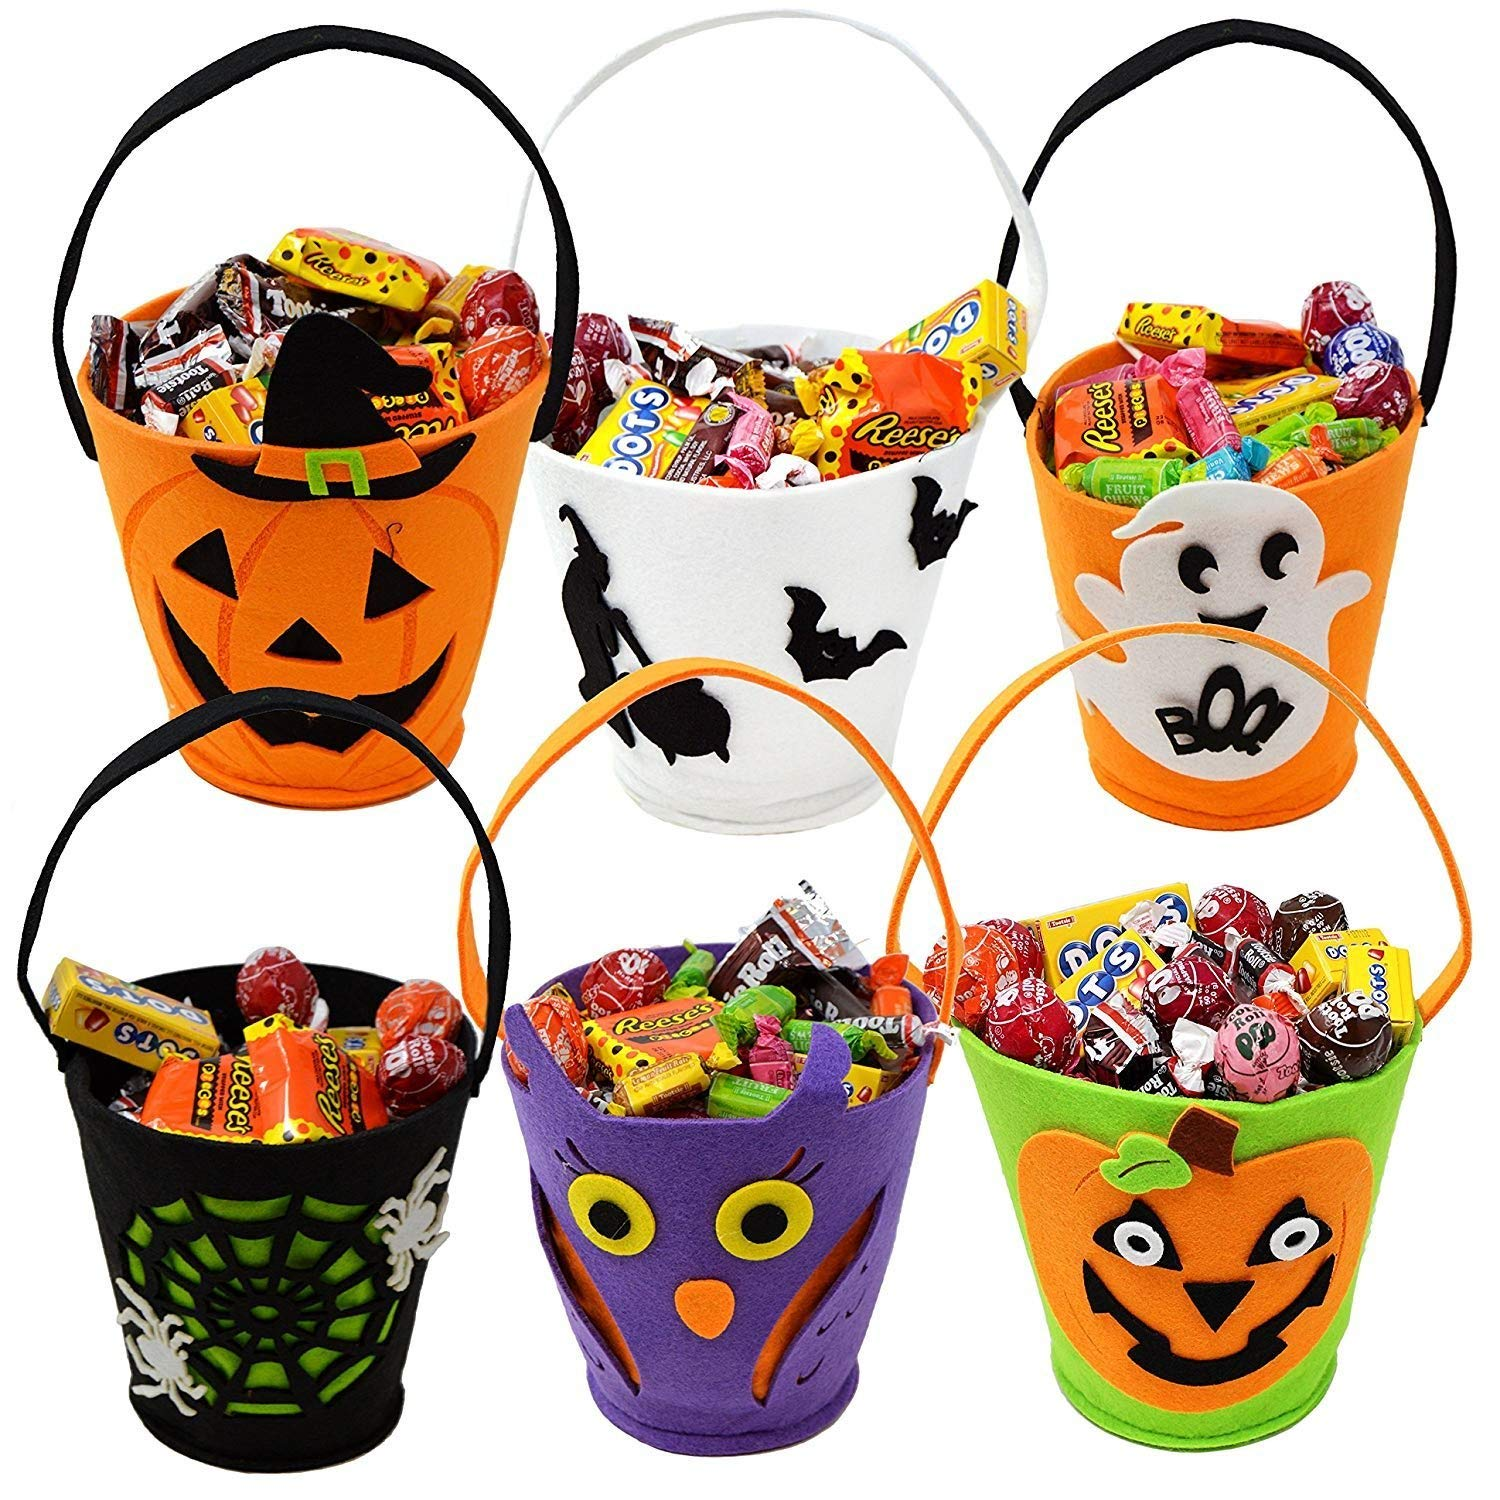 BELUPAI 6 PCS Halloween Felt Material Trick or Treat Candy Dessert Bag, 6.5In Unique Funny design Pumpkin Hand bag Creepy Flying Ghost Hanging Skeleton Ghost Box Kid's Bag Candy Gifts